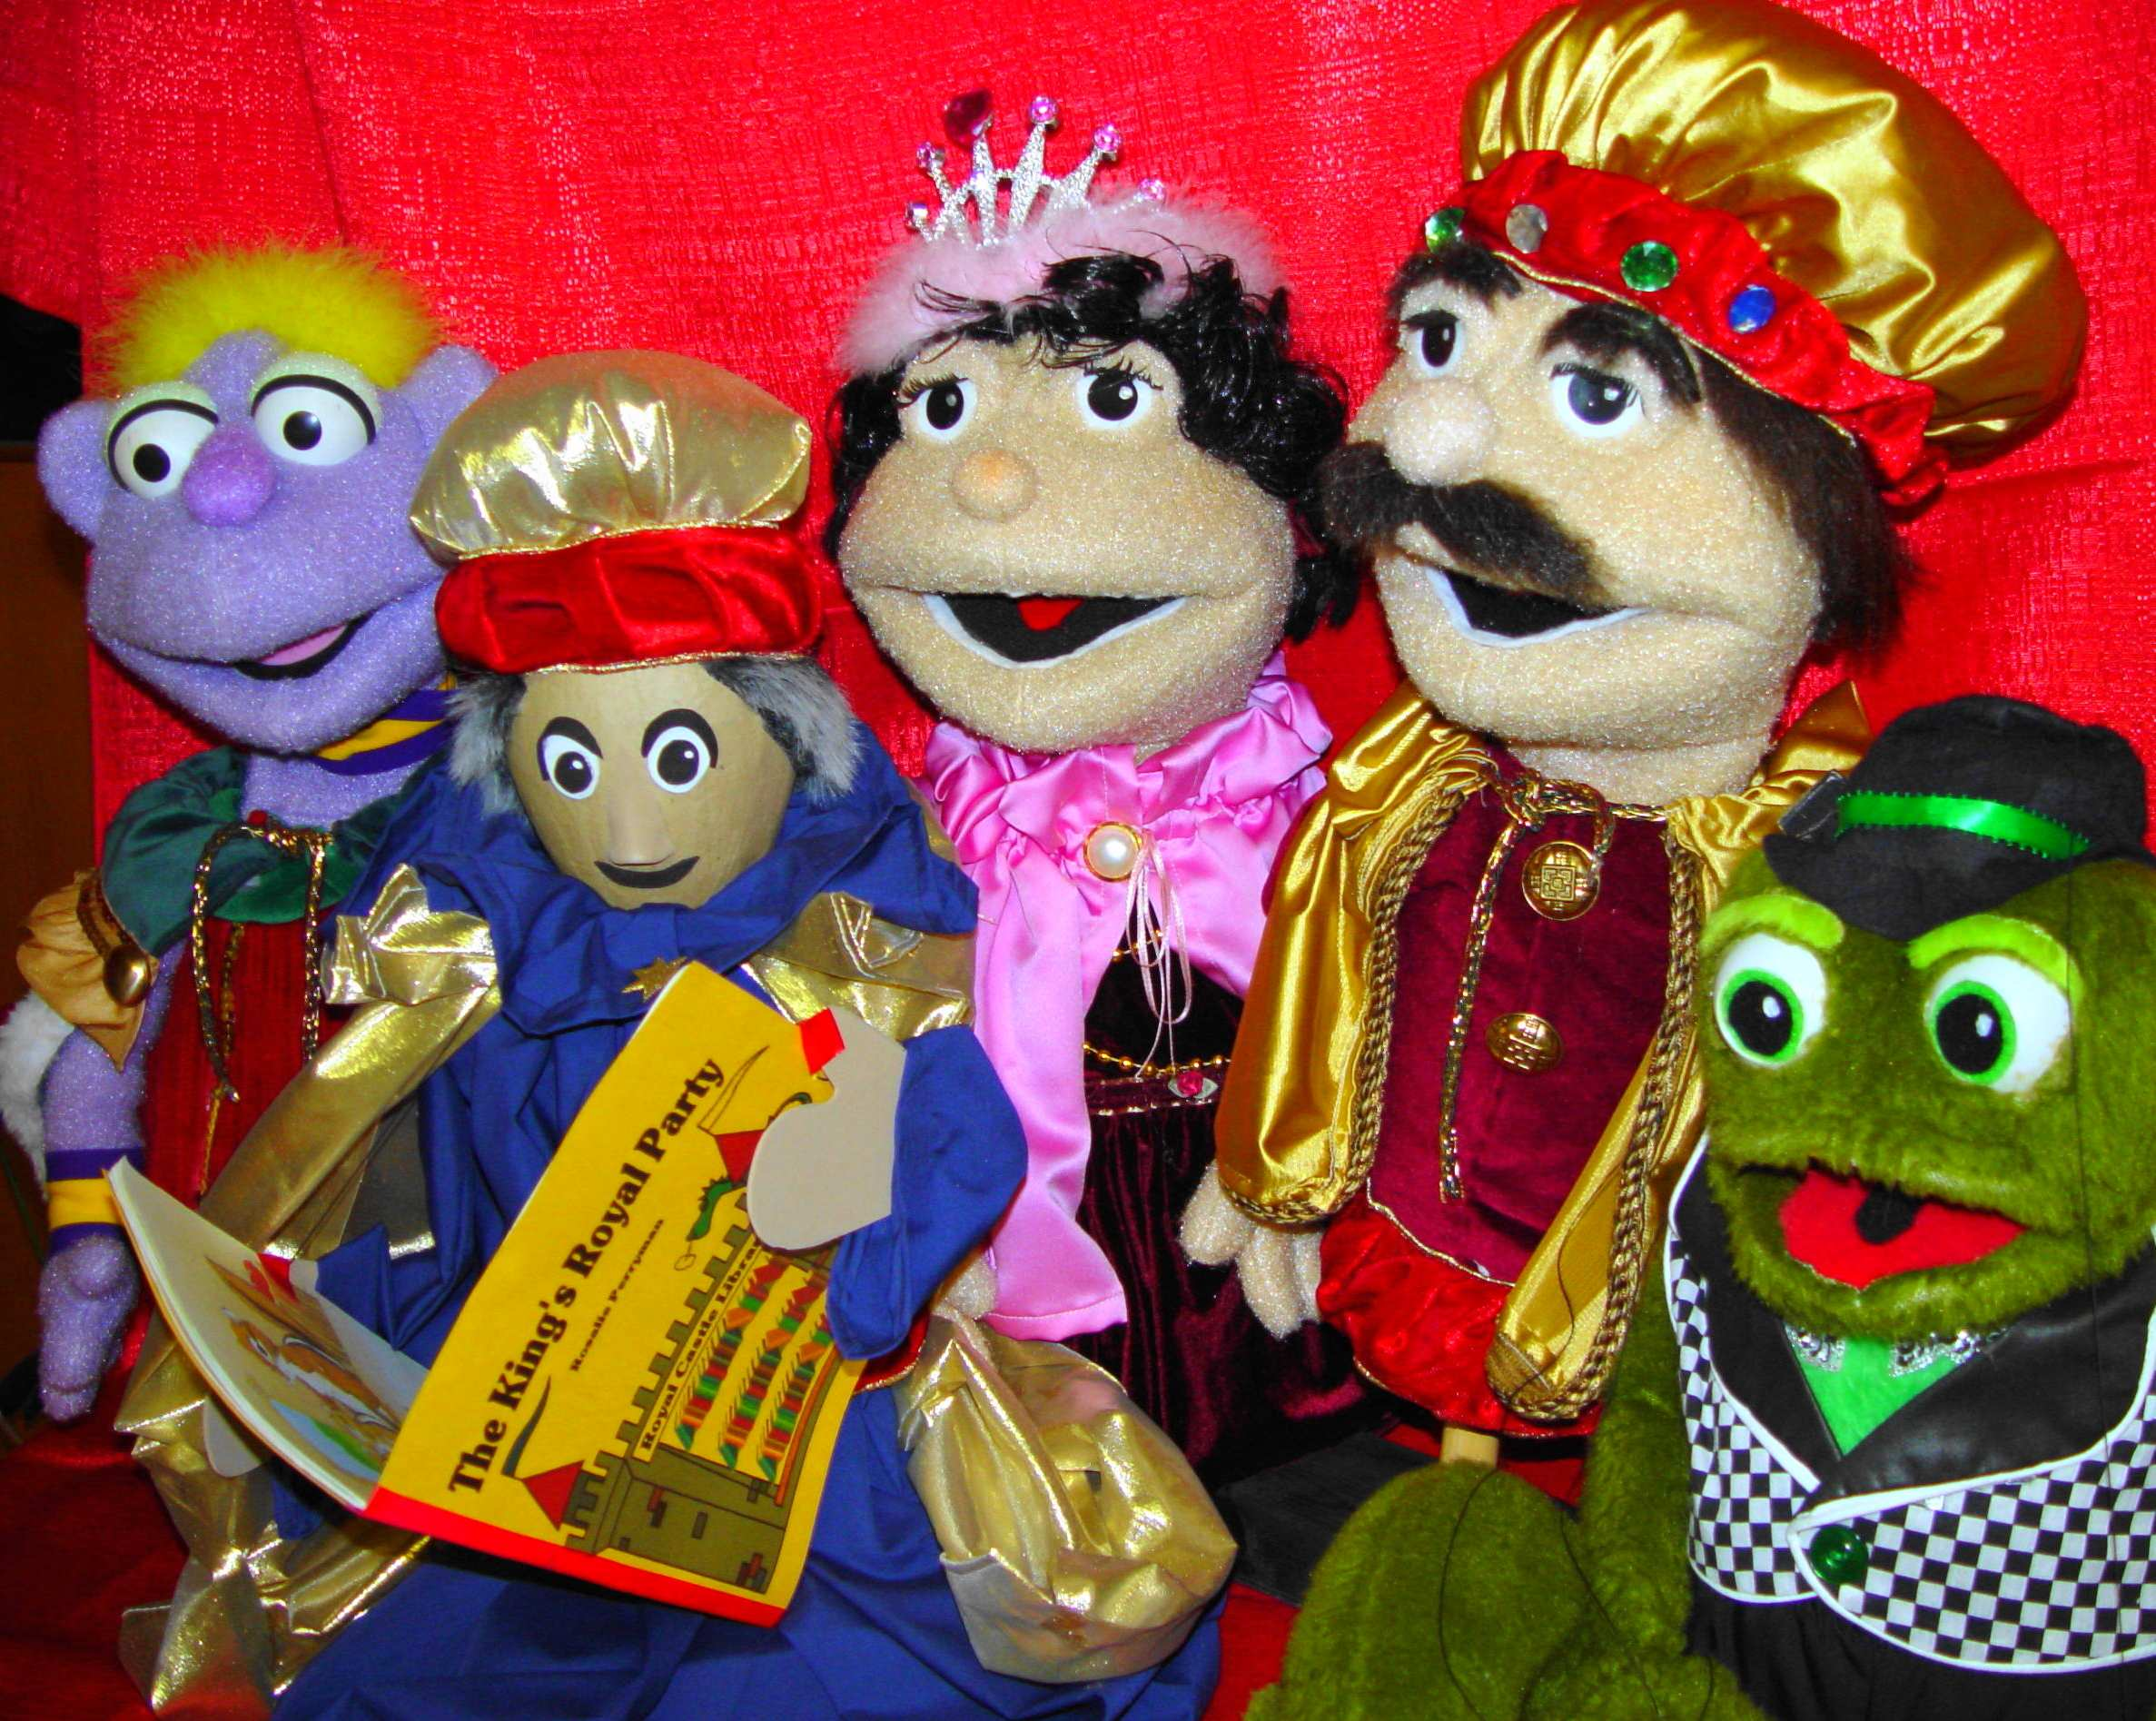 puppets1 - Puppets